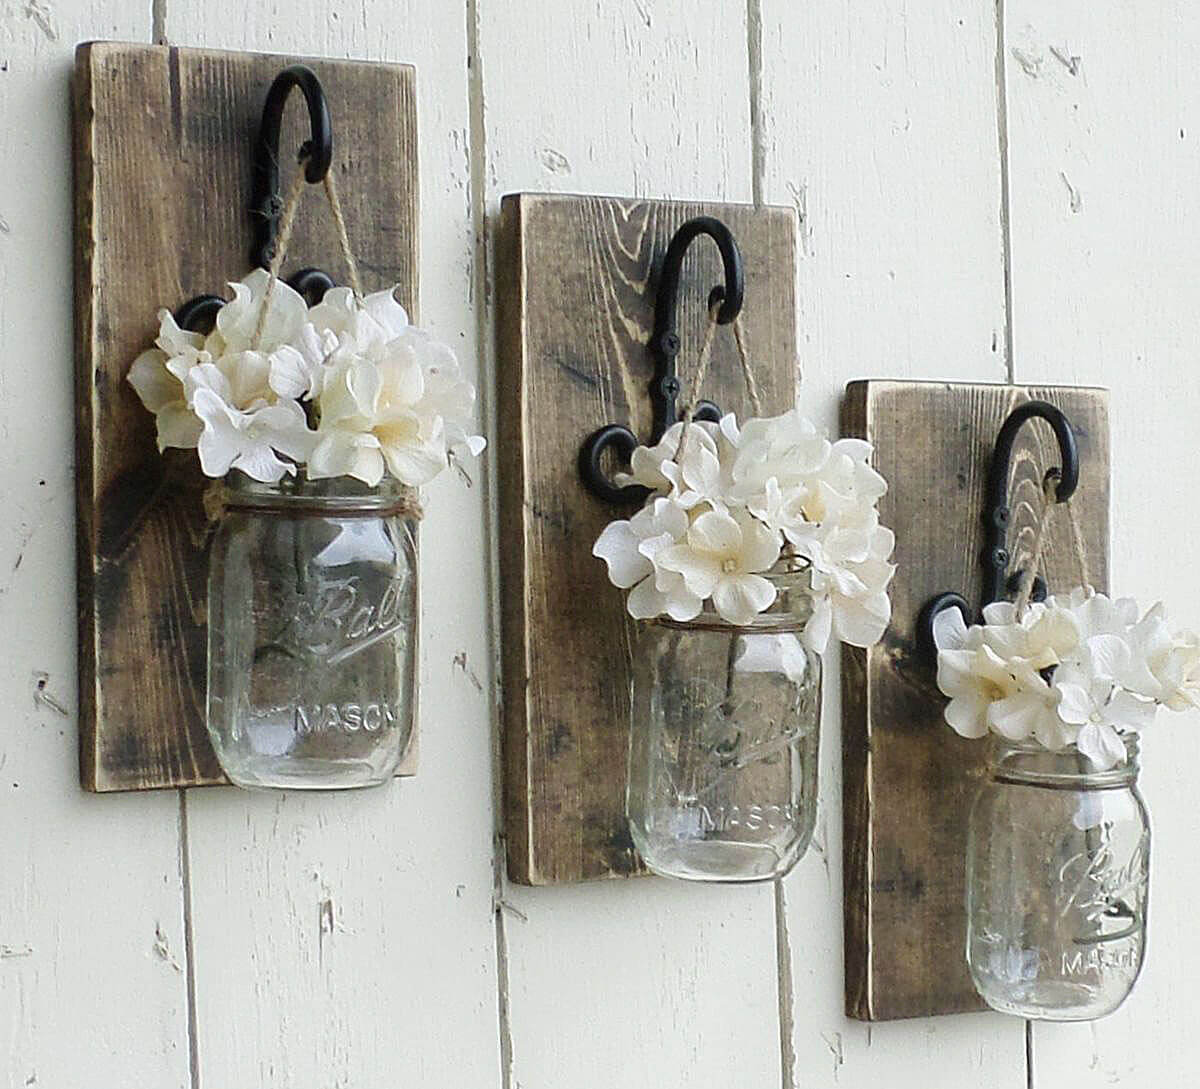 3 hanging mason jars filled with flowers